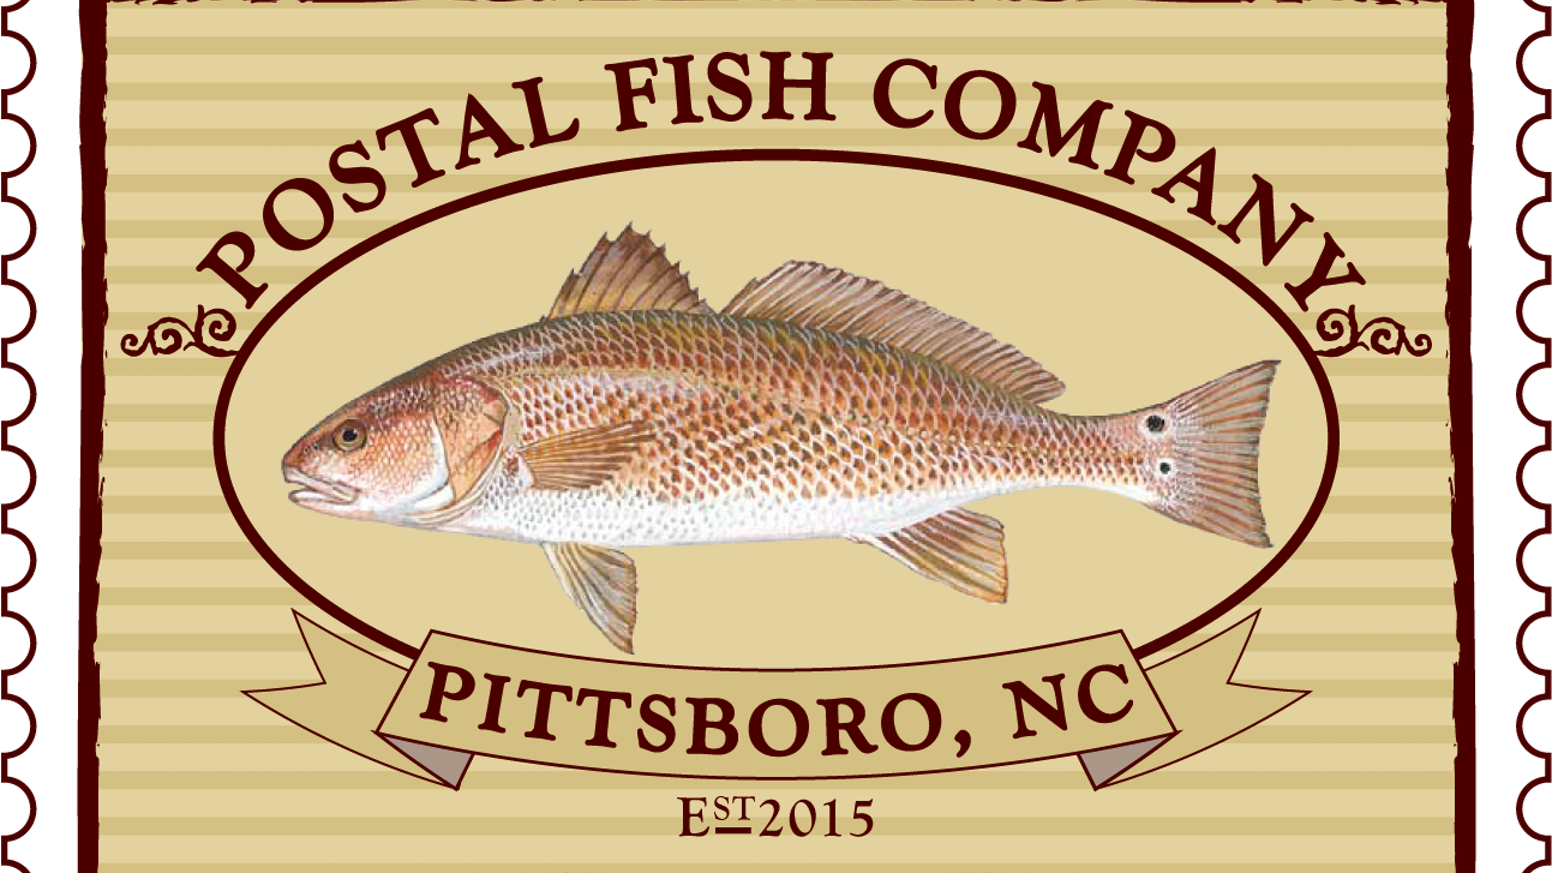 Postal fish company 3d renderings webdesign by bill for Atlantic fish co